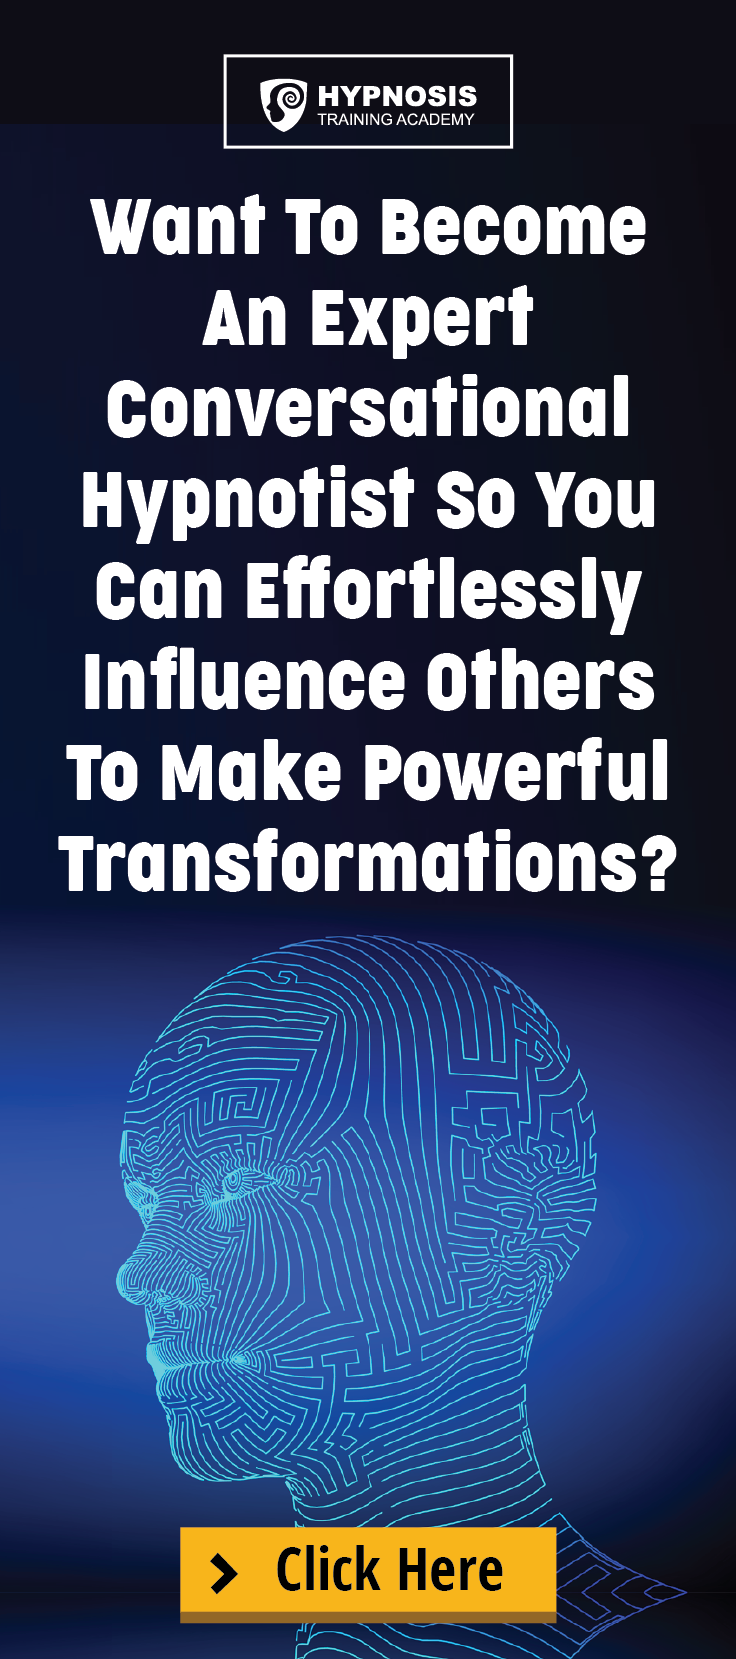 Power Of Conversational Hypnosis 2 0 Hypnosis Covert Hypnosis Online Programs